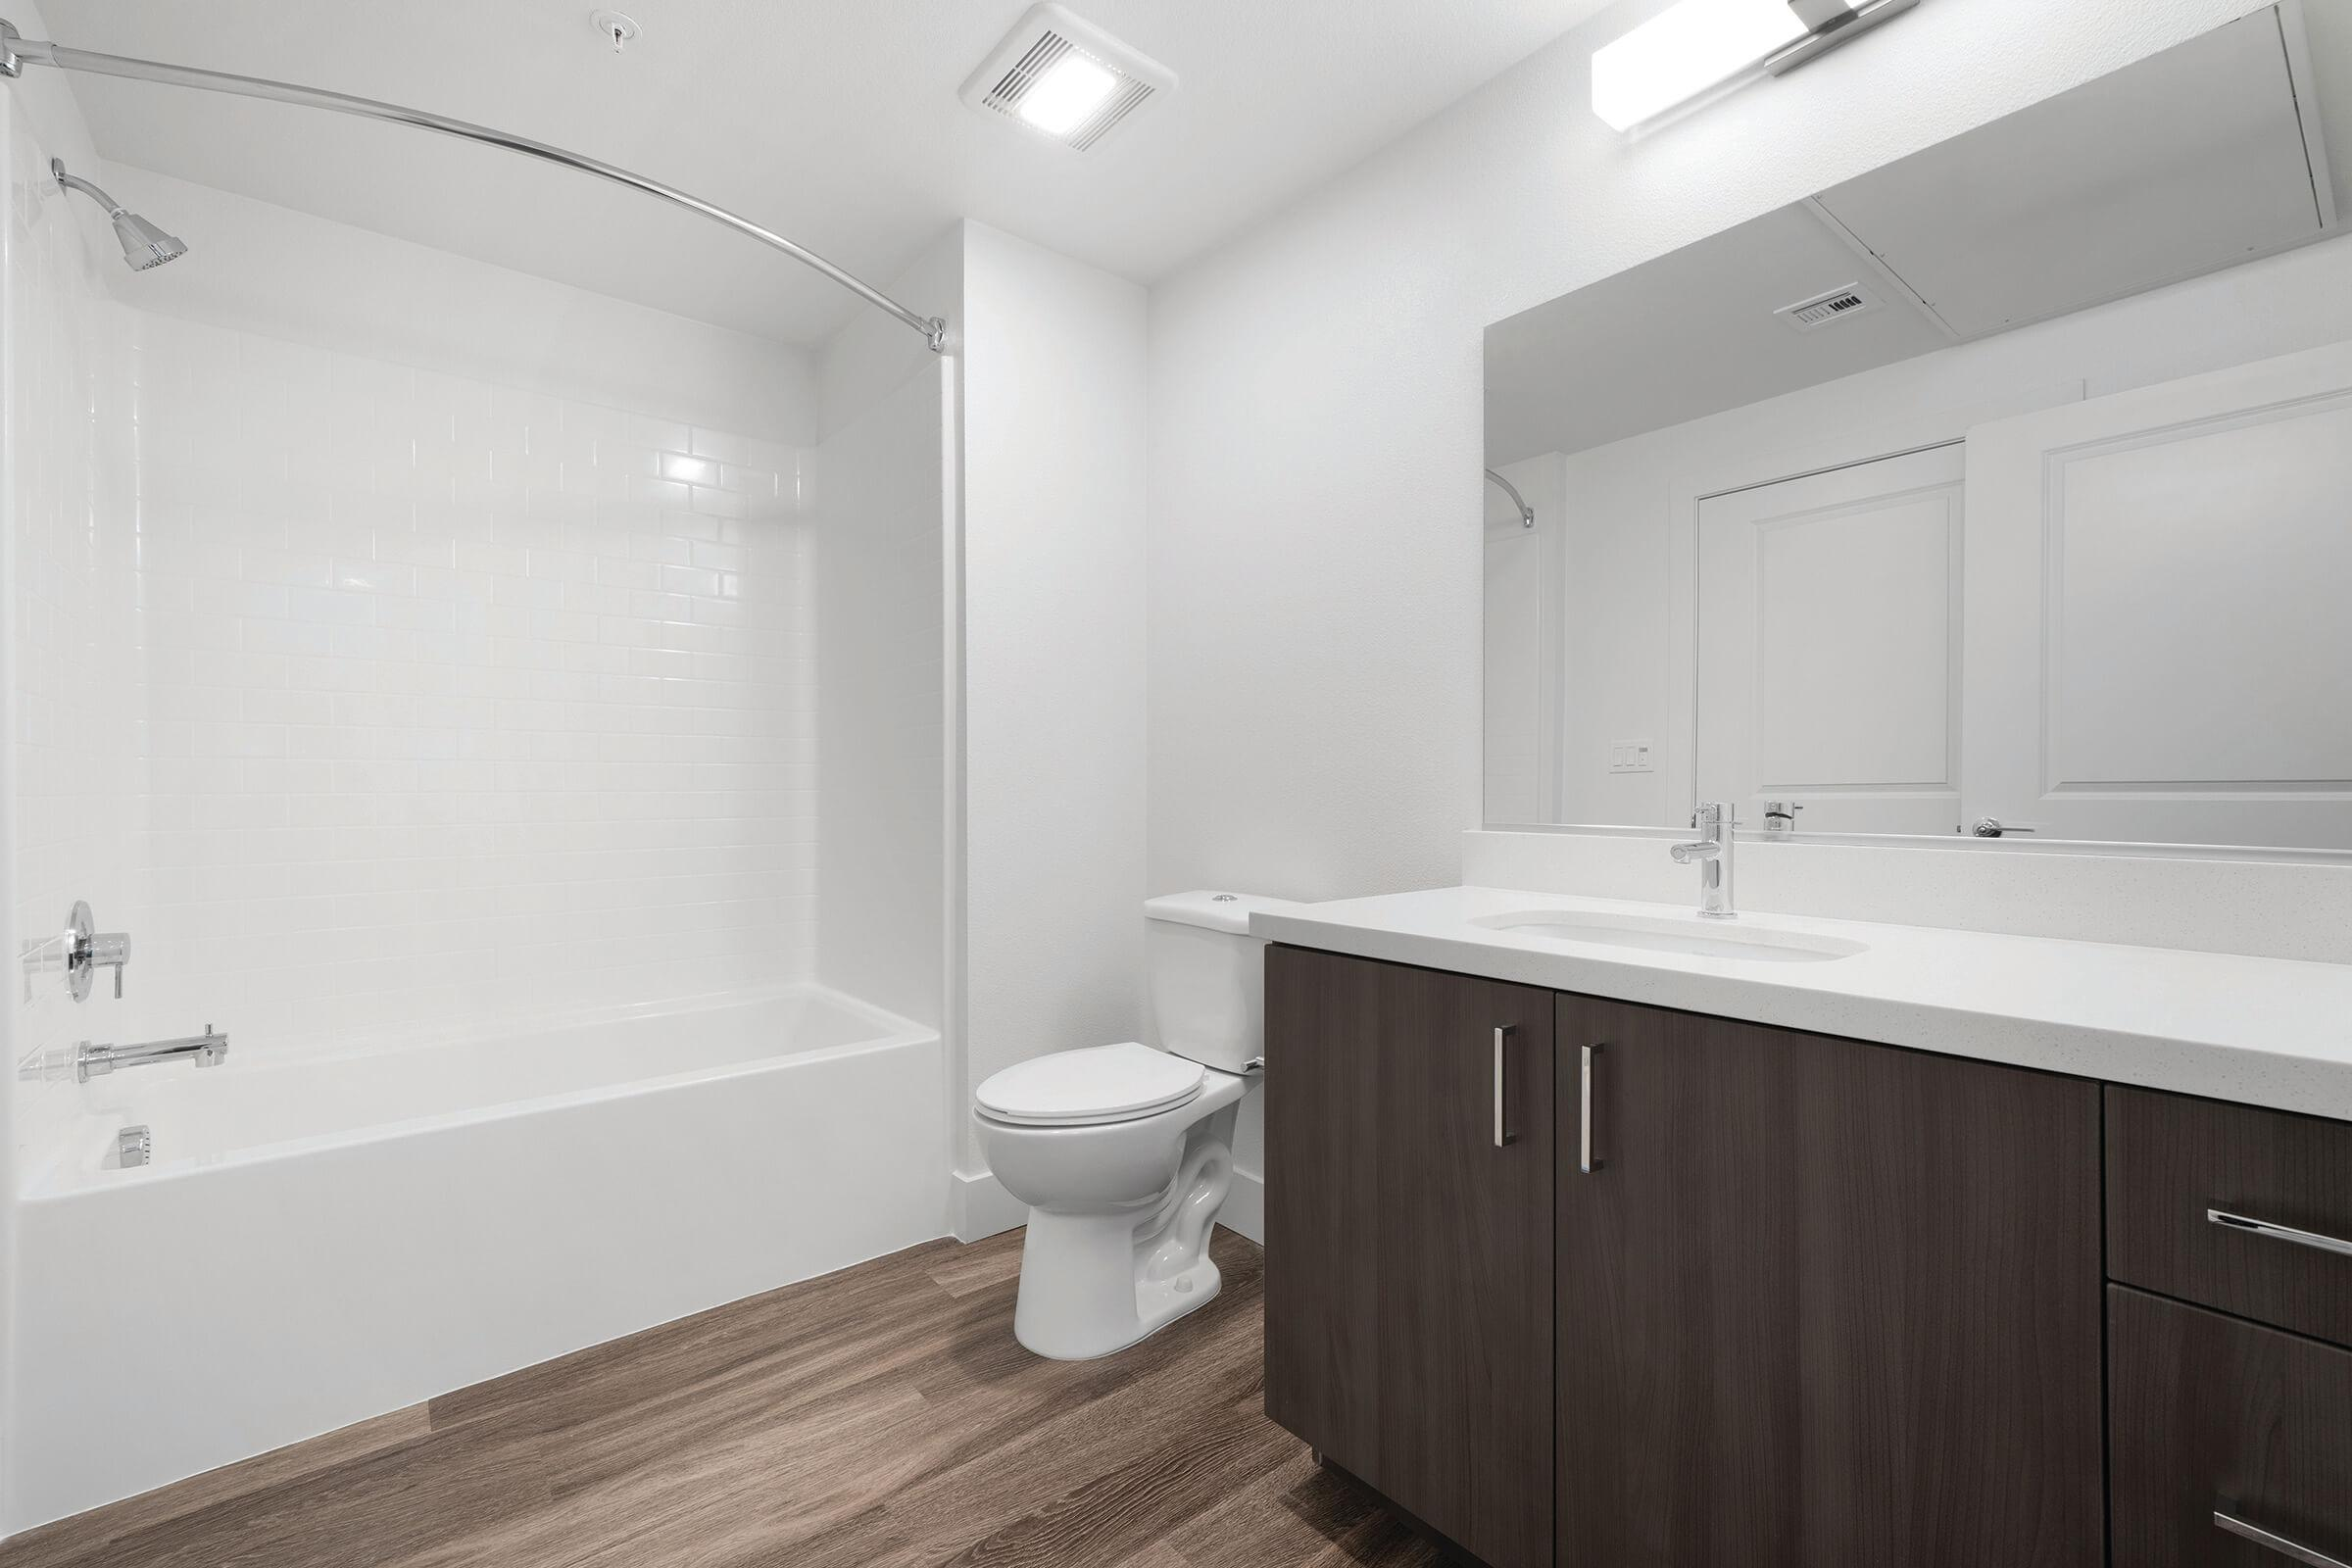 a shower and a sink